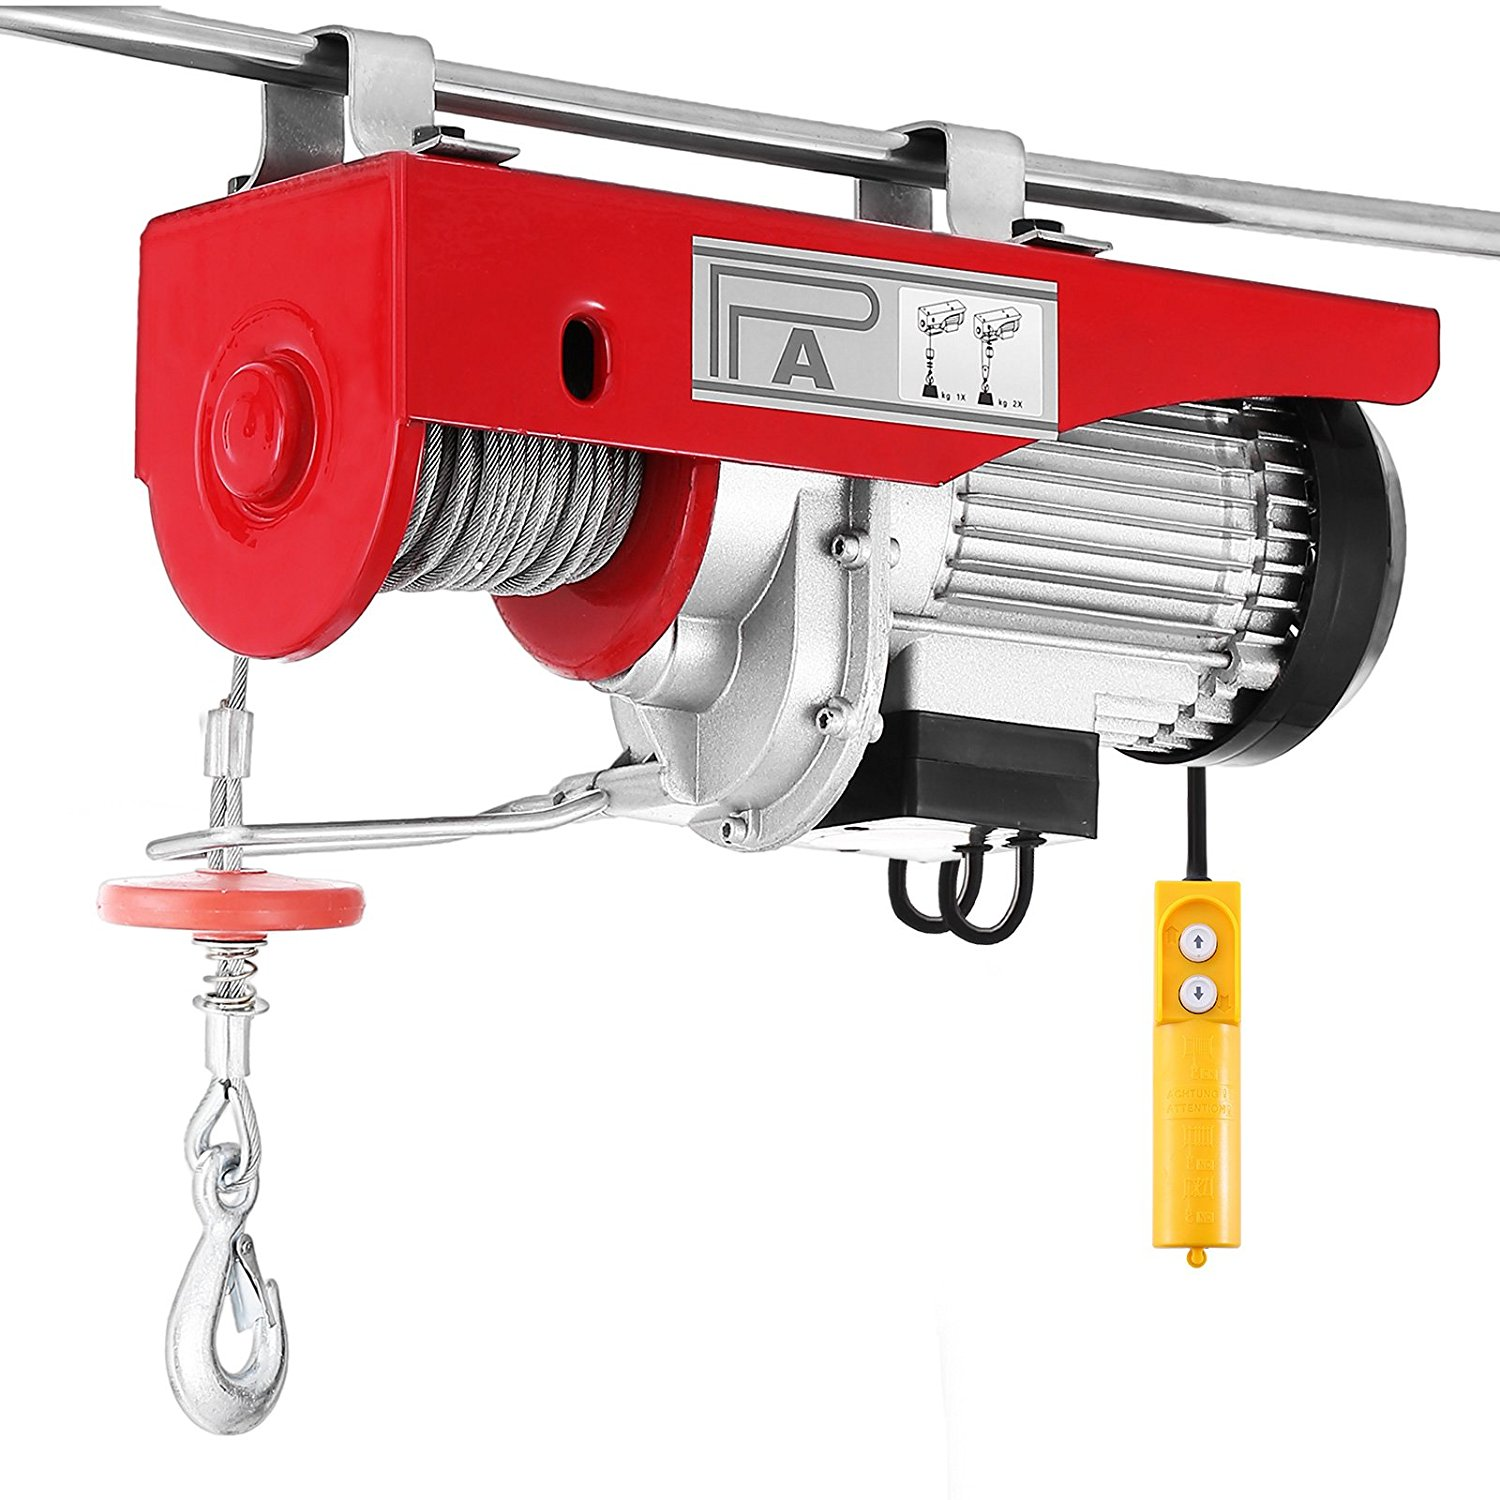 Buy Hoist accessories electric hoist wireless remote control ... on